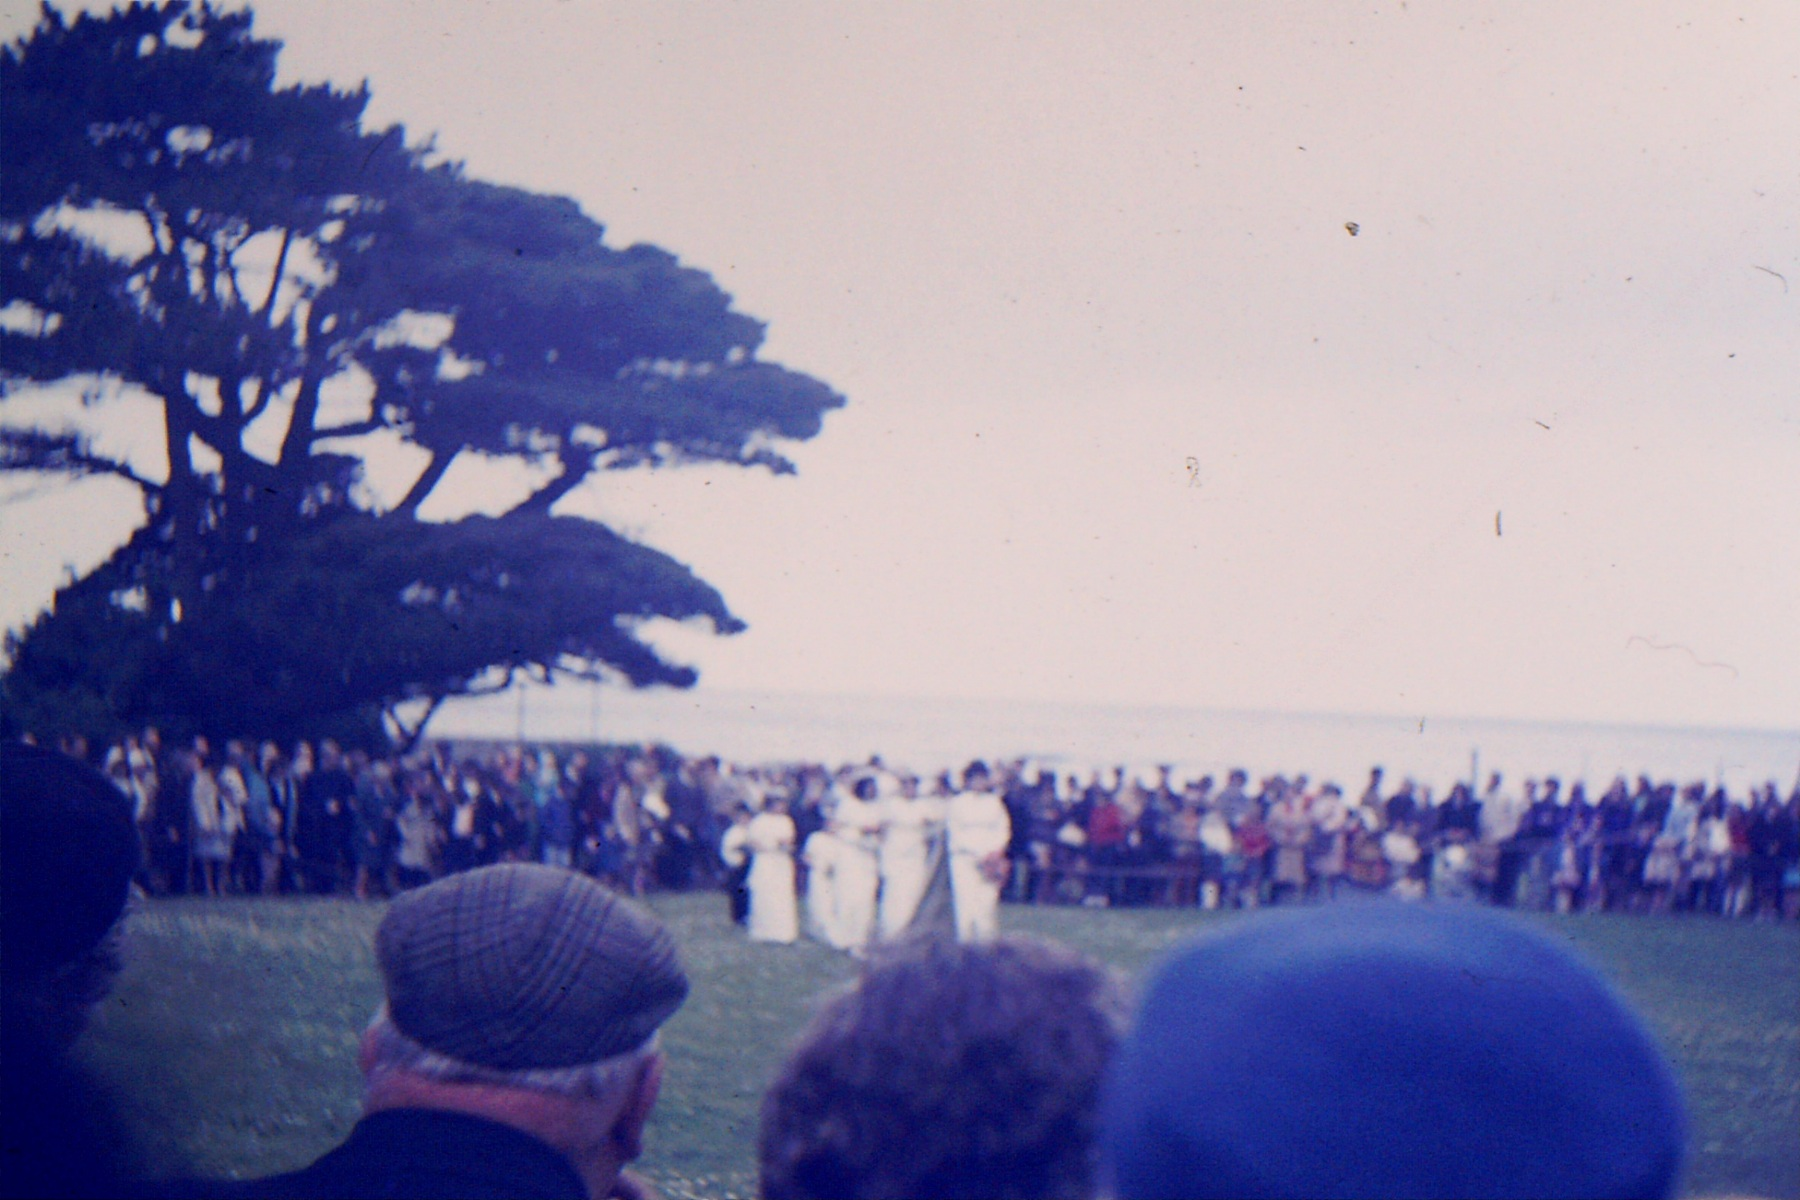 1966-69 Middle Barton School - Field trip to Yenworthy, Somerset - Arrival of the May Queen.